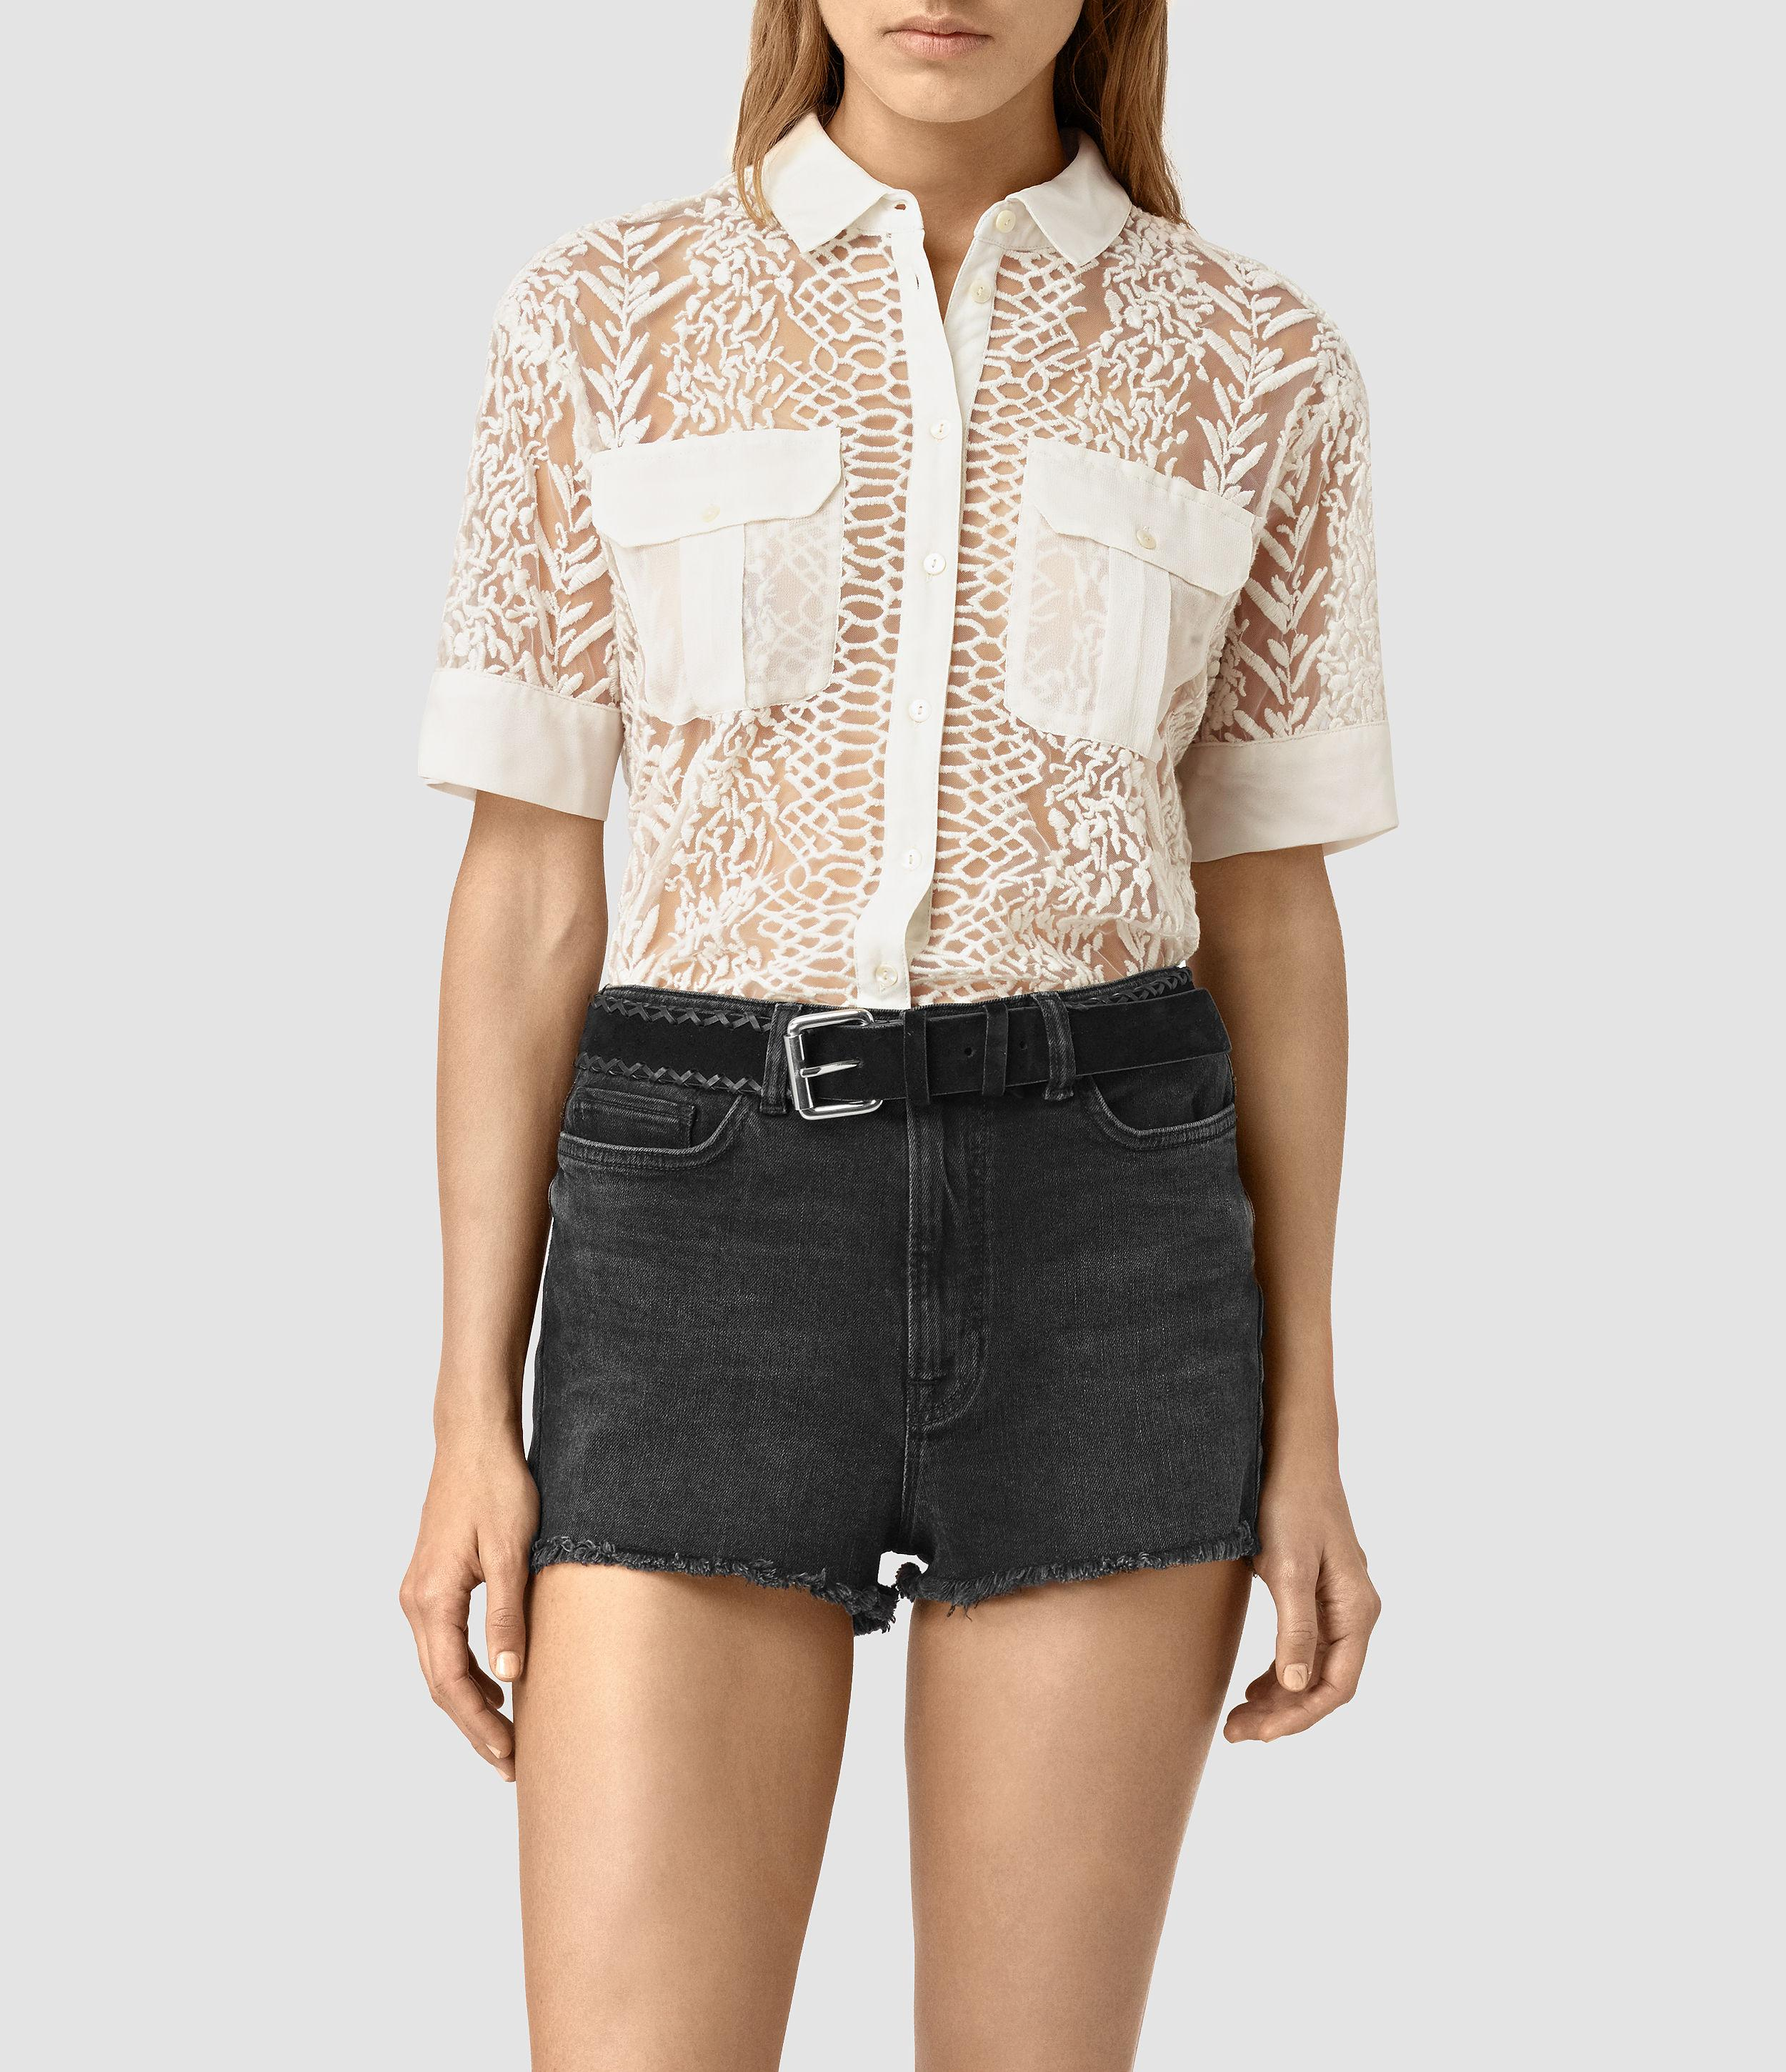 8456209c591220 AllSaints Cariad Embroidered Shirt in White - Lyst